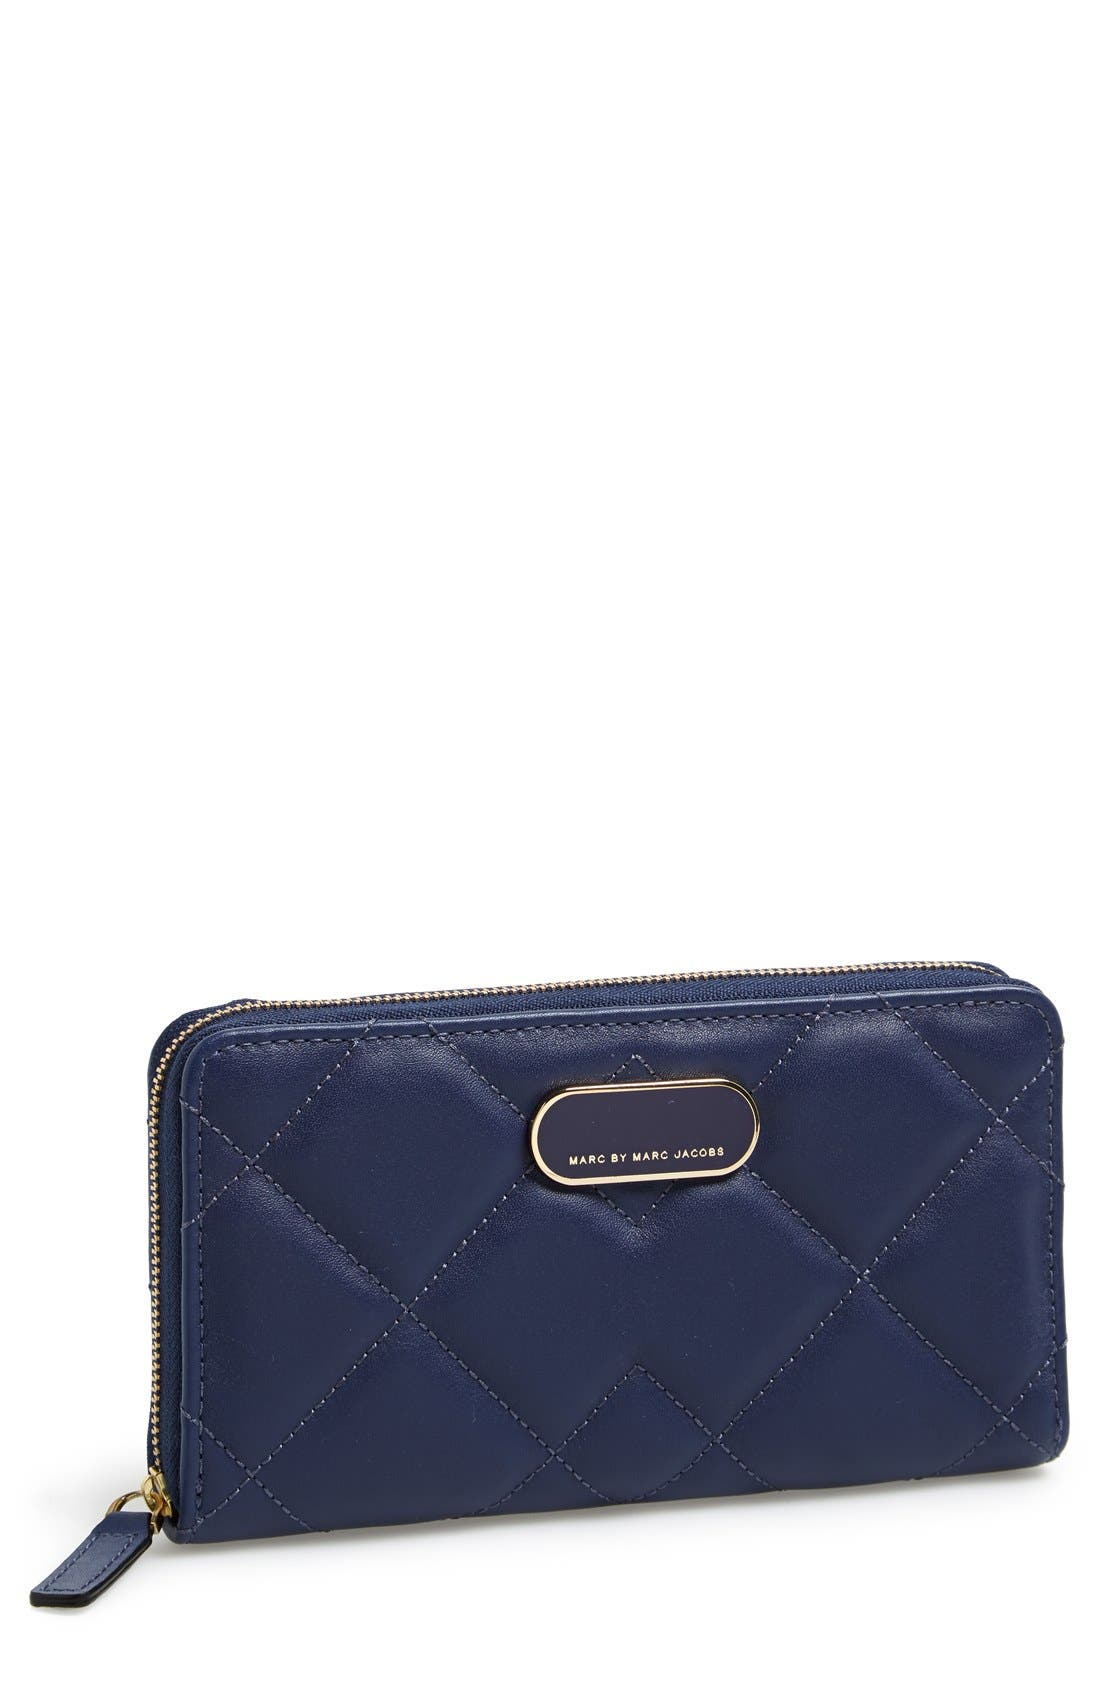 Main Image - MARC BY MARC JACOBS 'Quilty Vertical Zippy' Leather Wallet